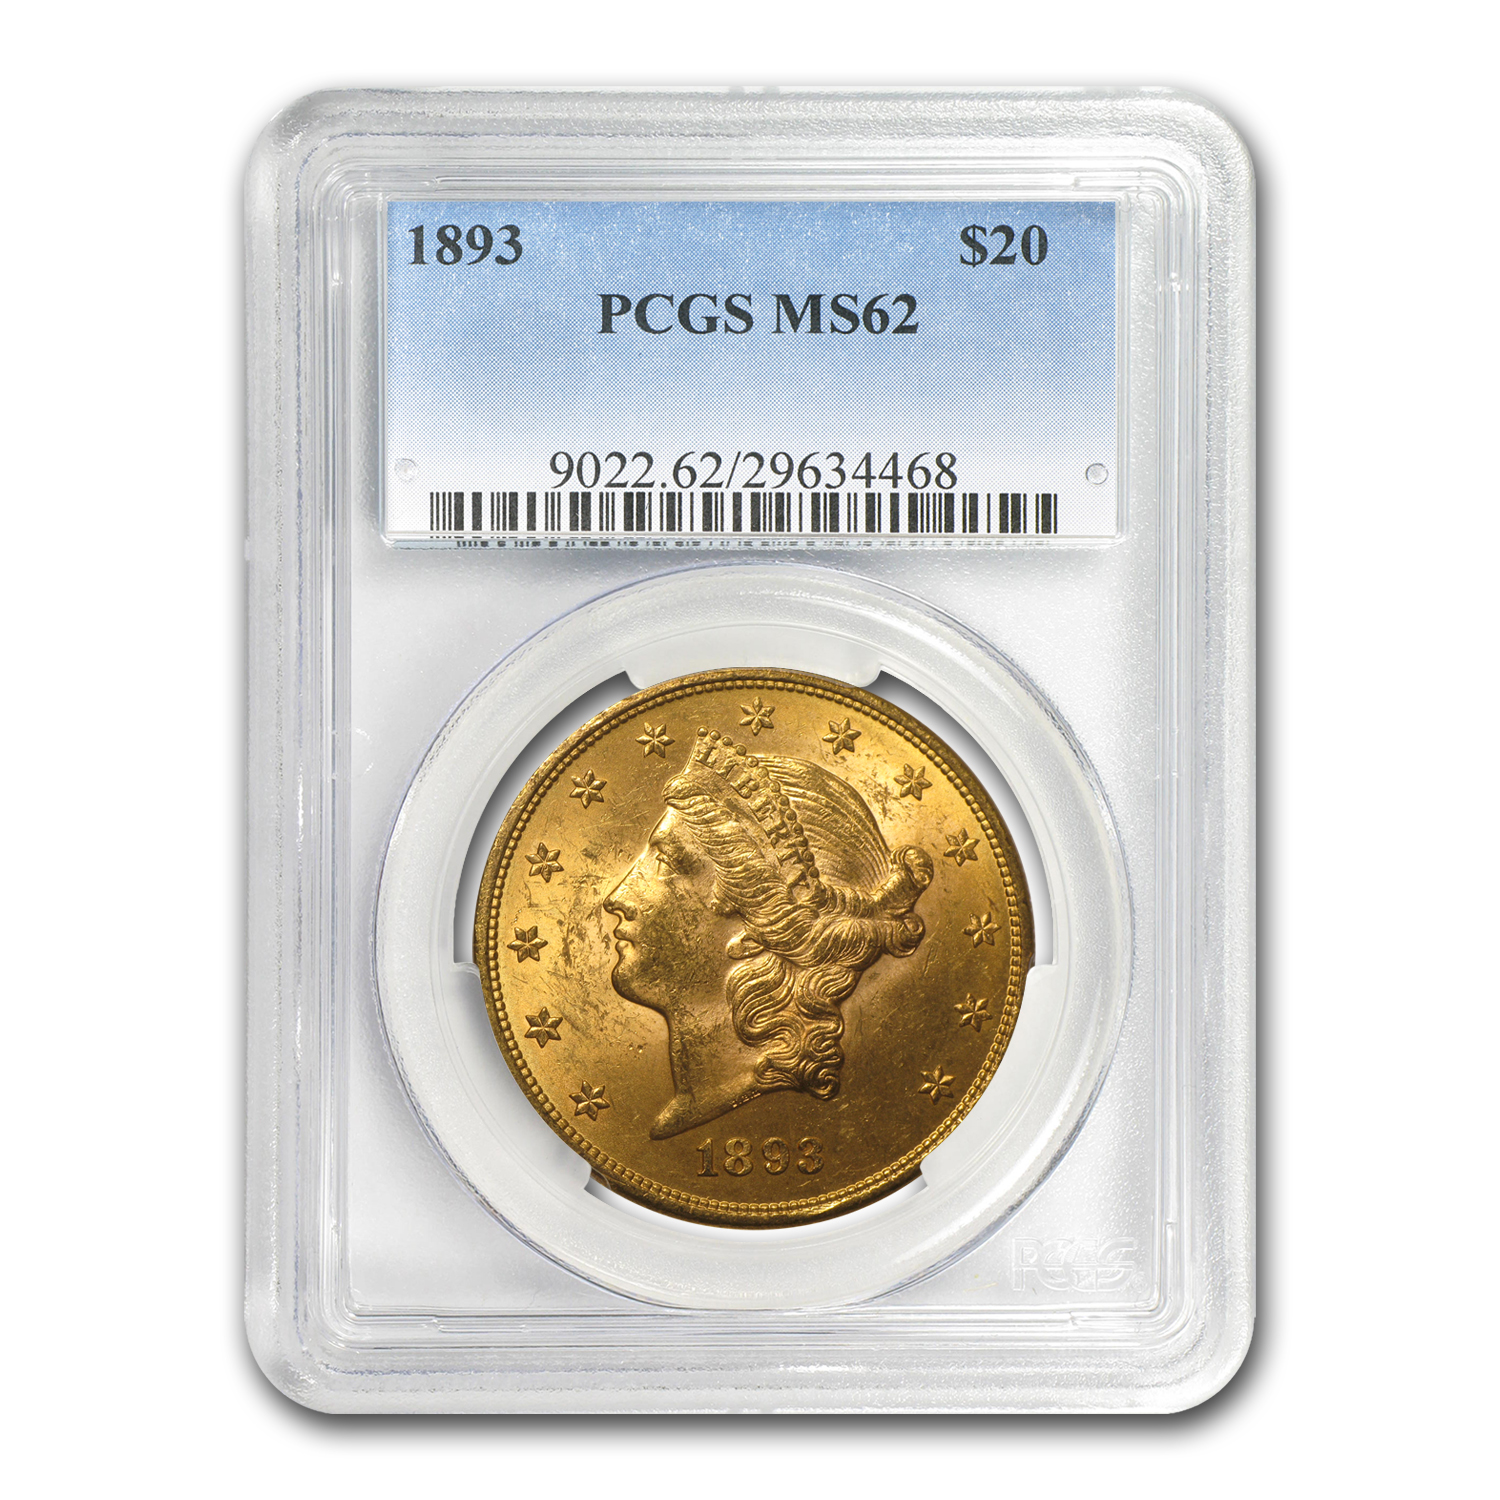 5-Coin $20 Liberty Gold Dble Eagle Set MS-62 PCGS (1800s P-Mint)